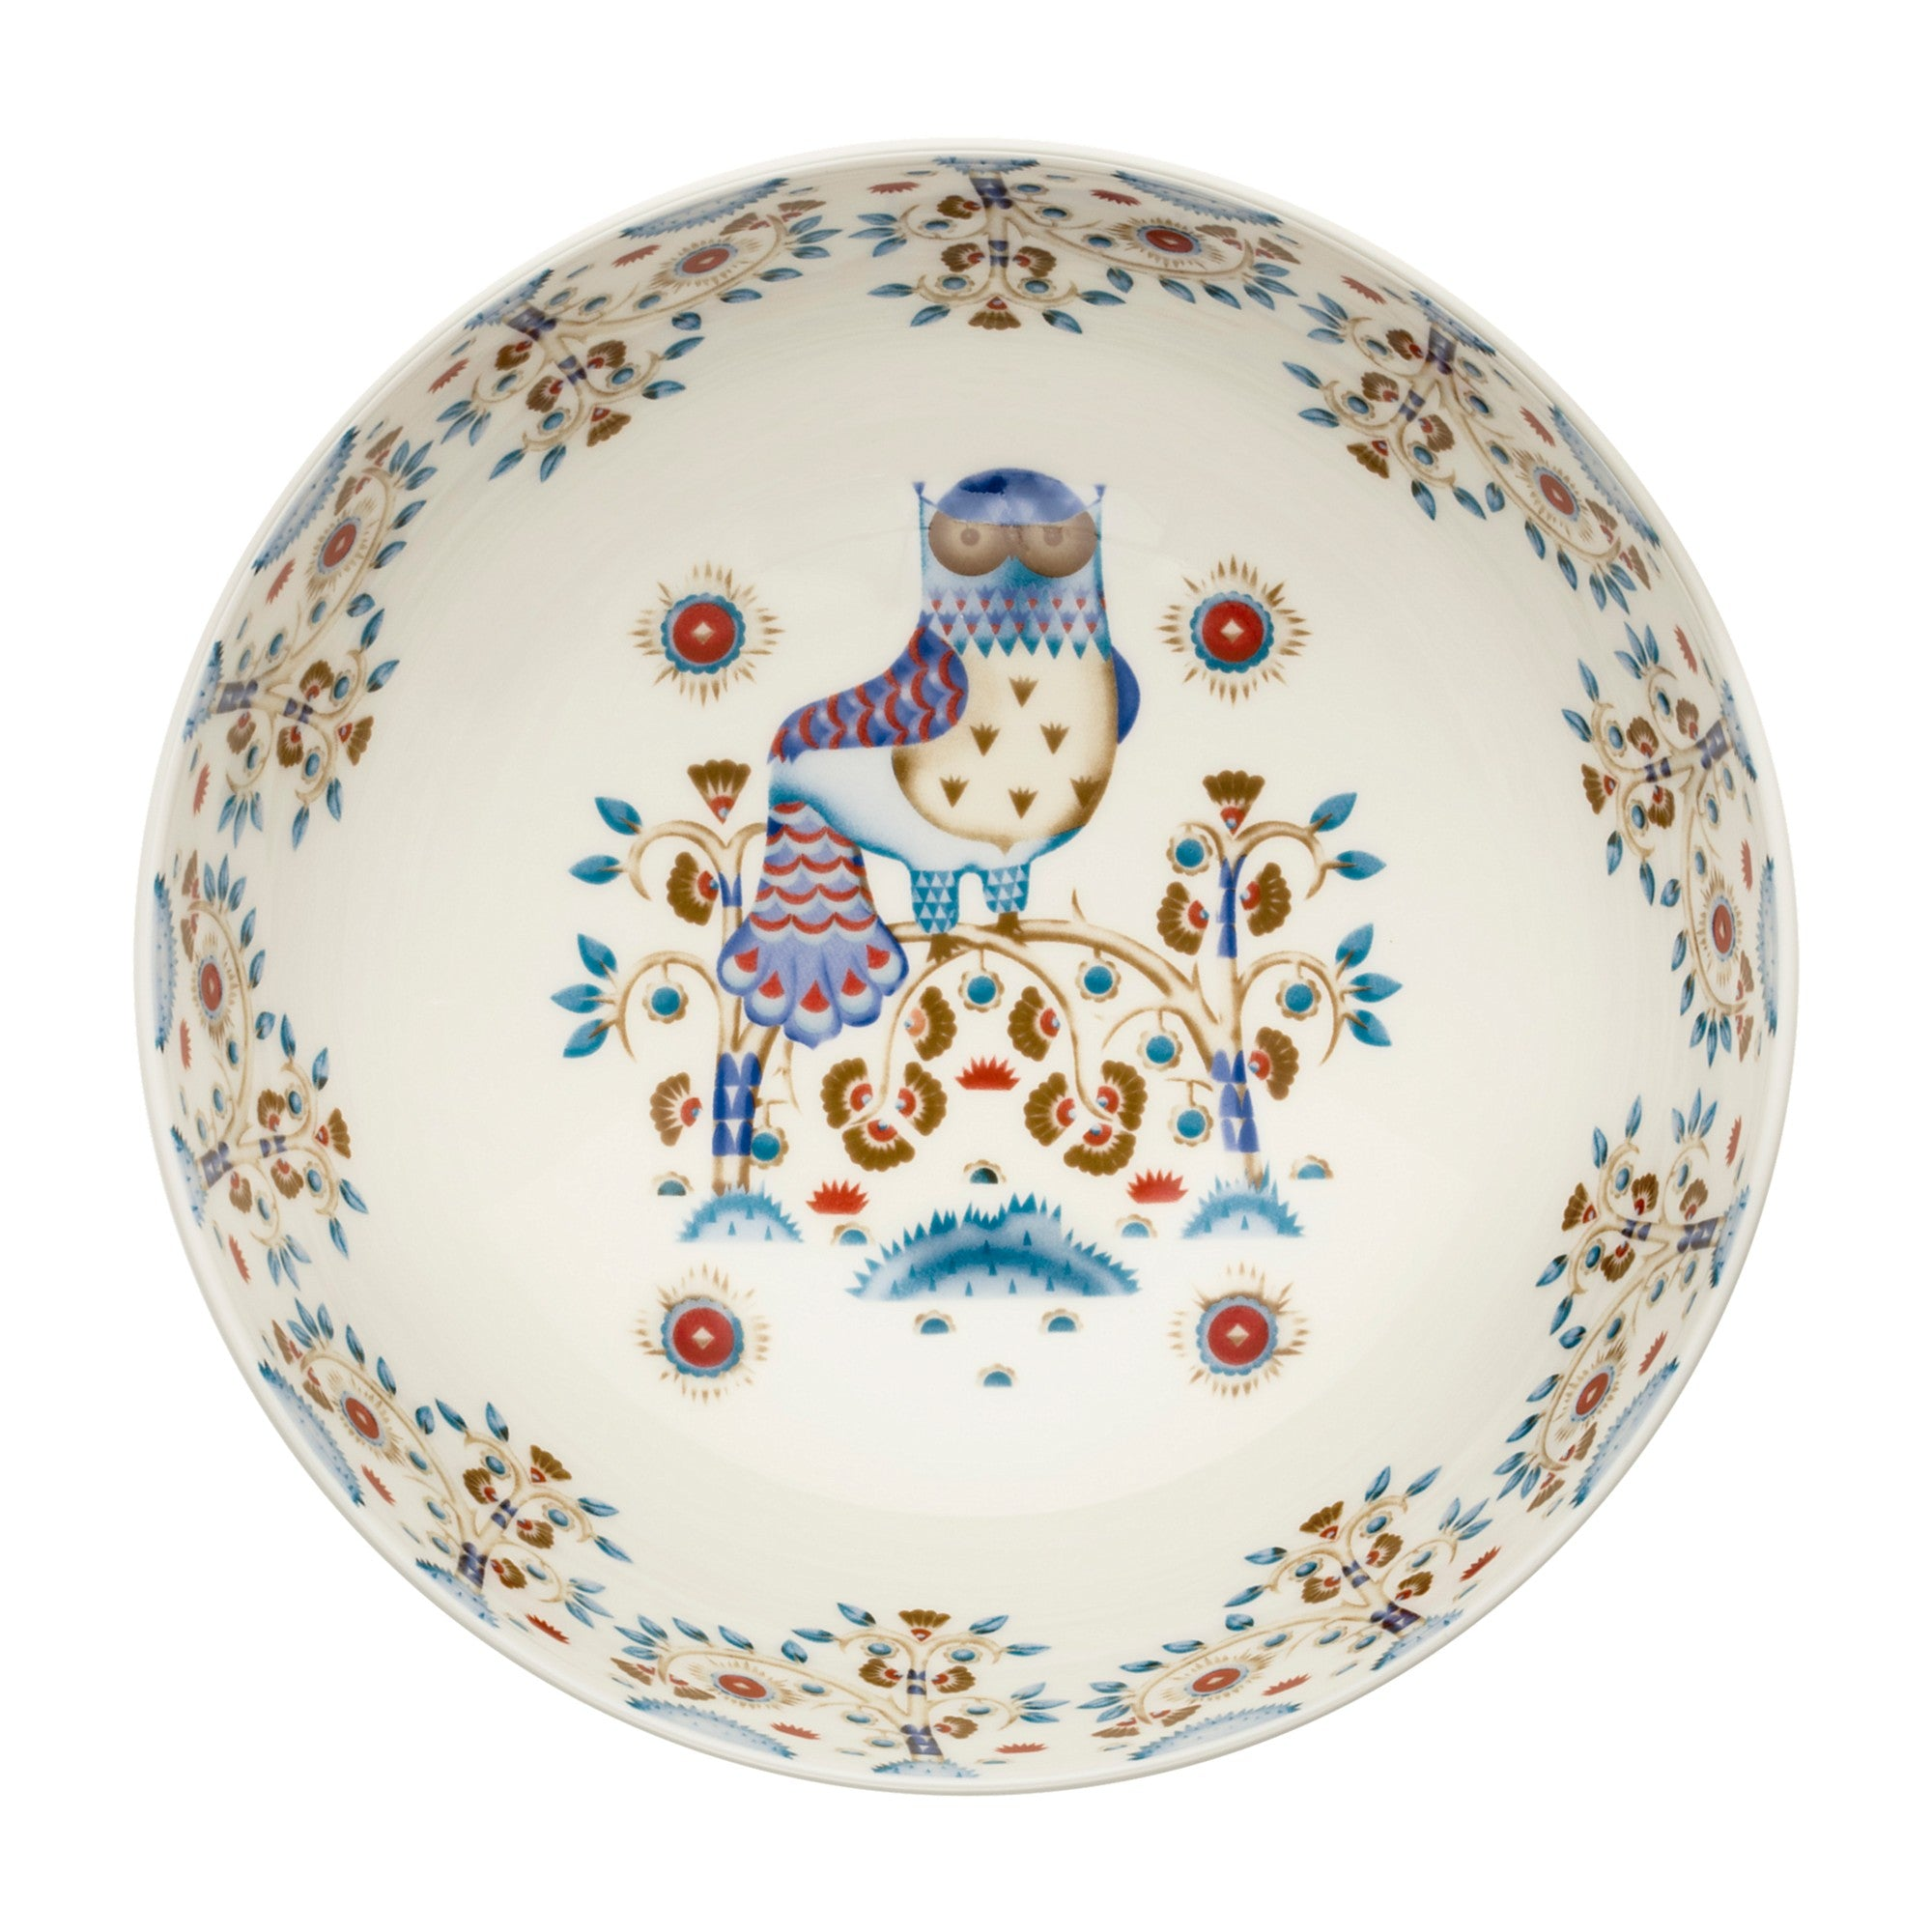 Taika serving bowl 1.45 l / 1.5q